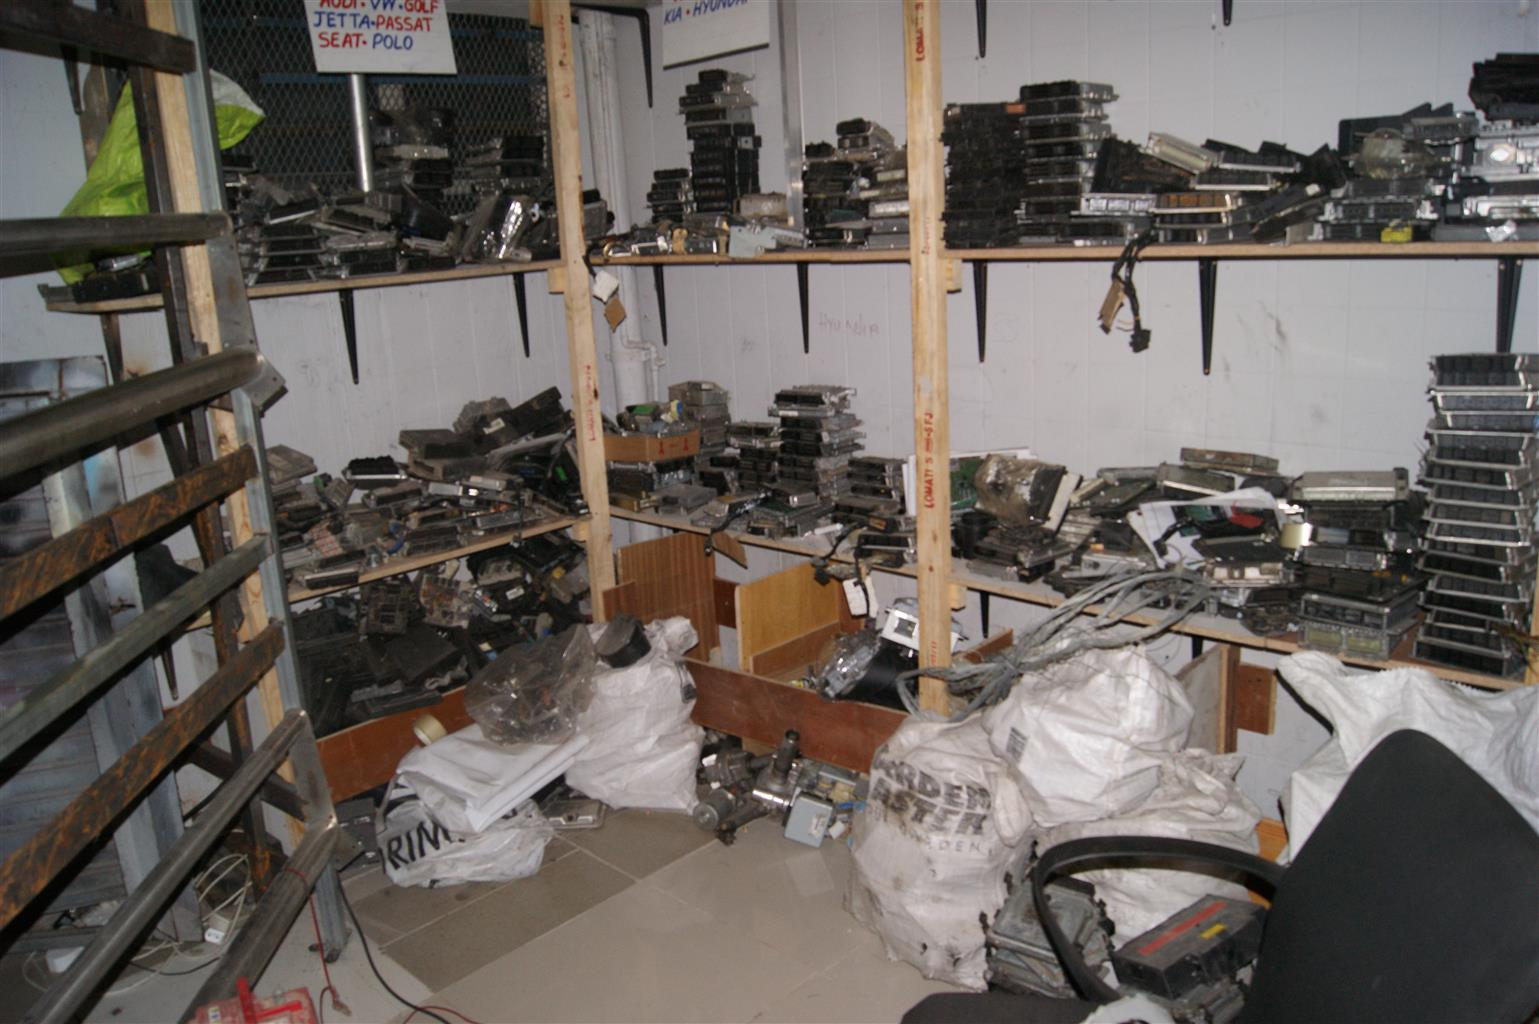 ecu. car computer boxes sell and supply .and programming of most cars